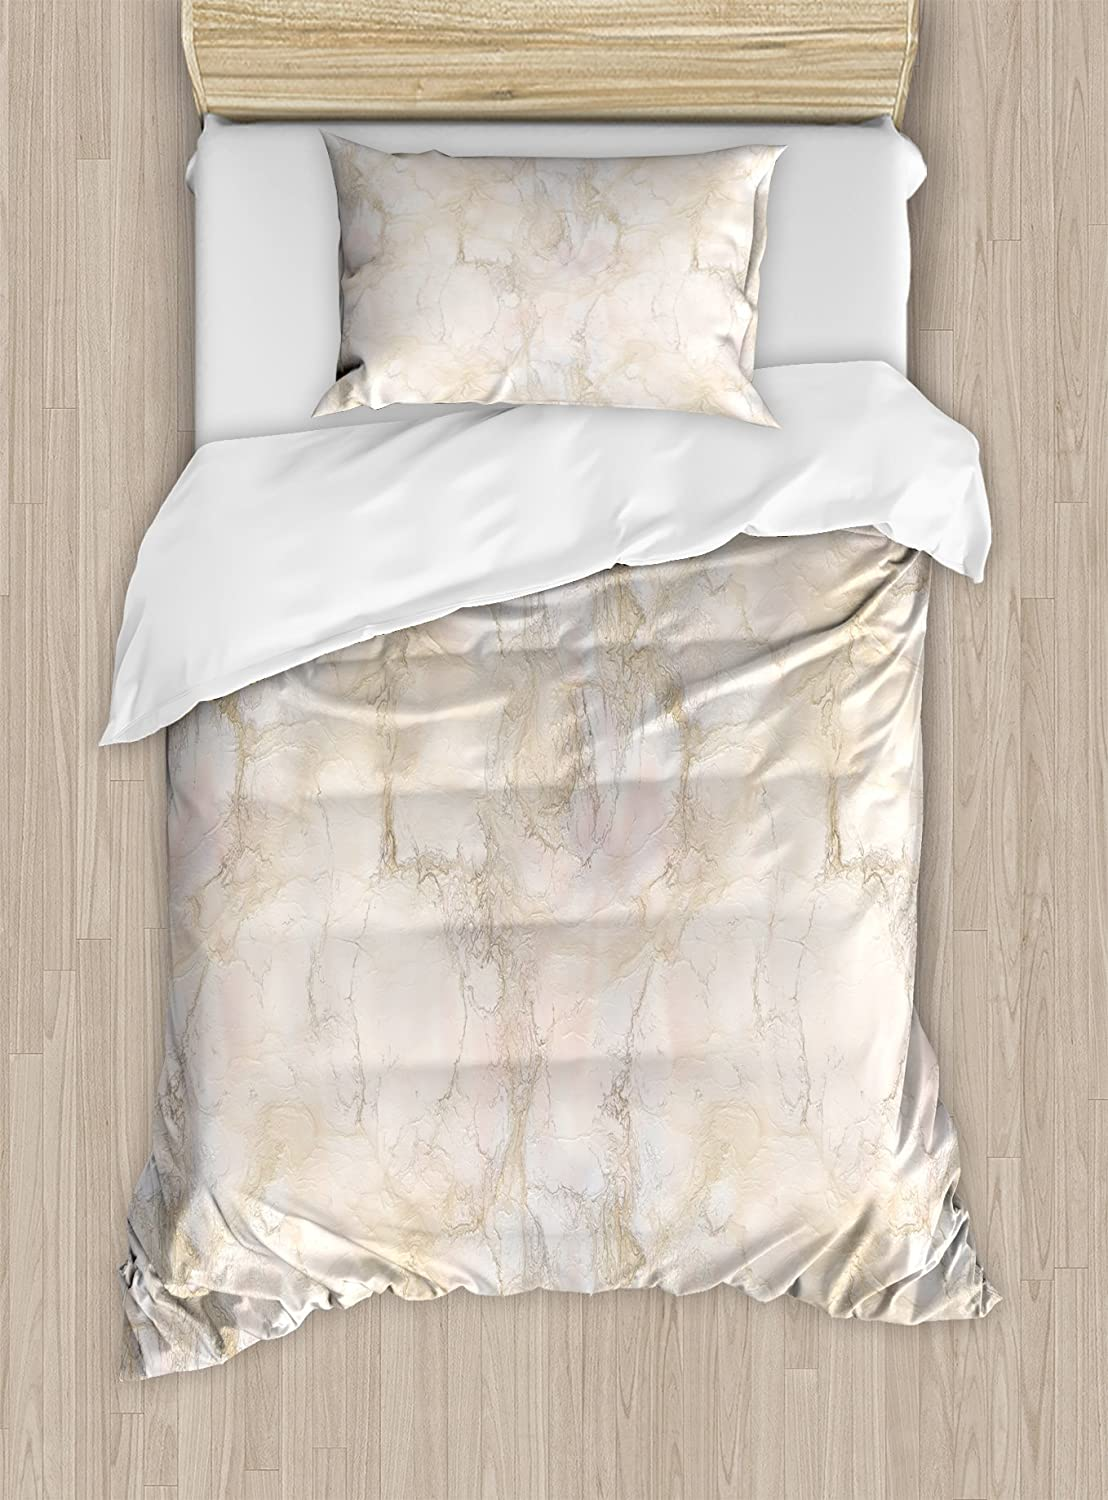 Ambesonne Marble Duvet Cover Set, Pink and Peach Marble Background with Crack Patterns Architecture and Building Material, Decorative 2 Piece Bedding Set with 1 Pillow Sham, Twin Size, Beige Peach